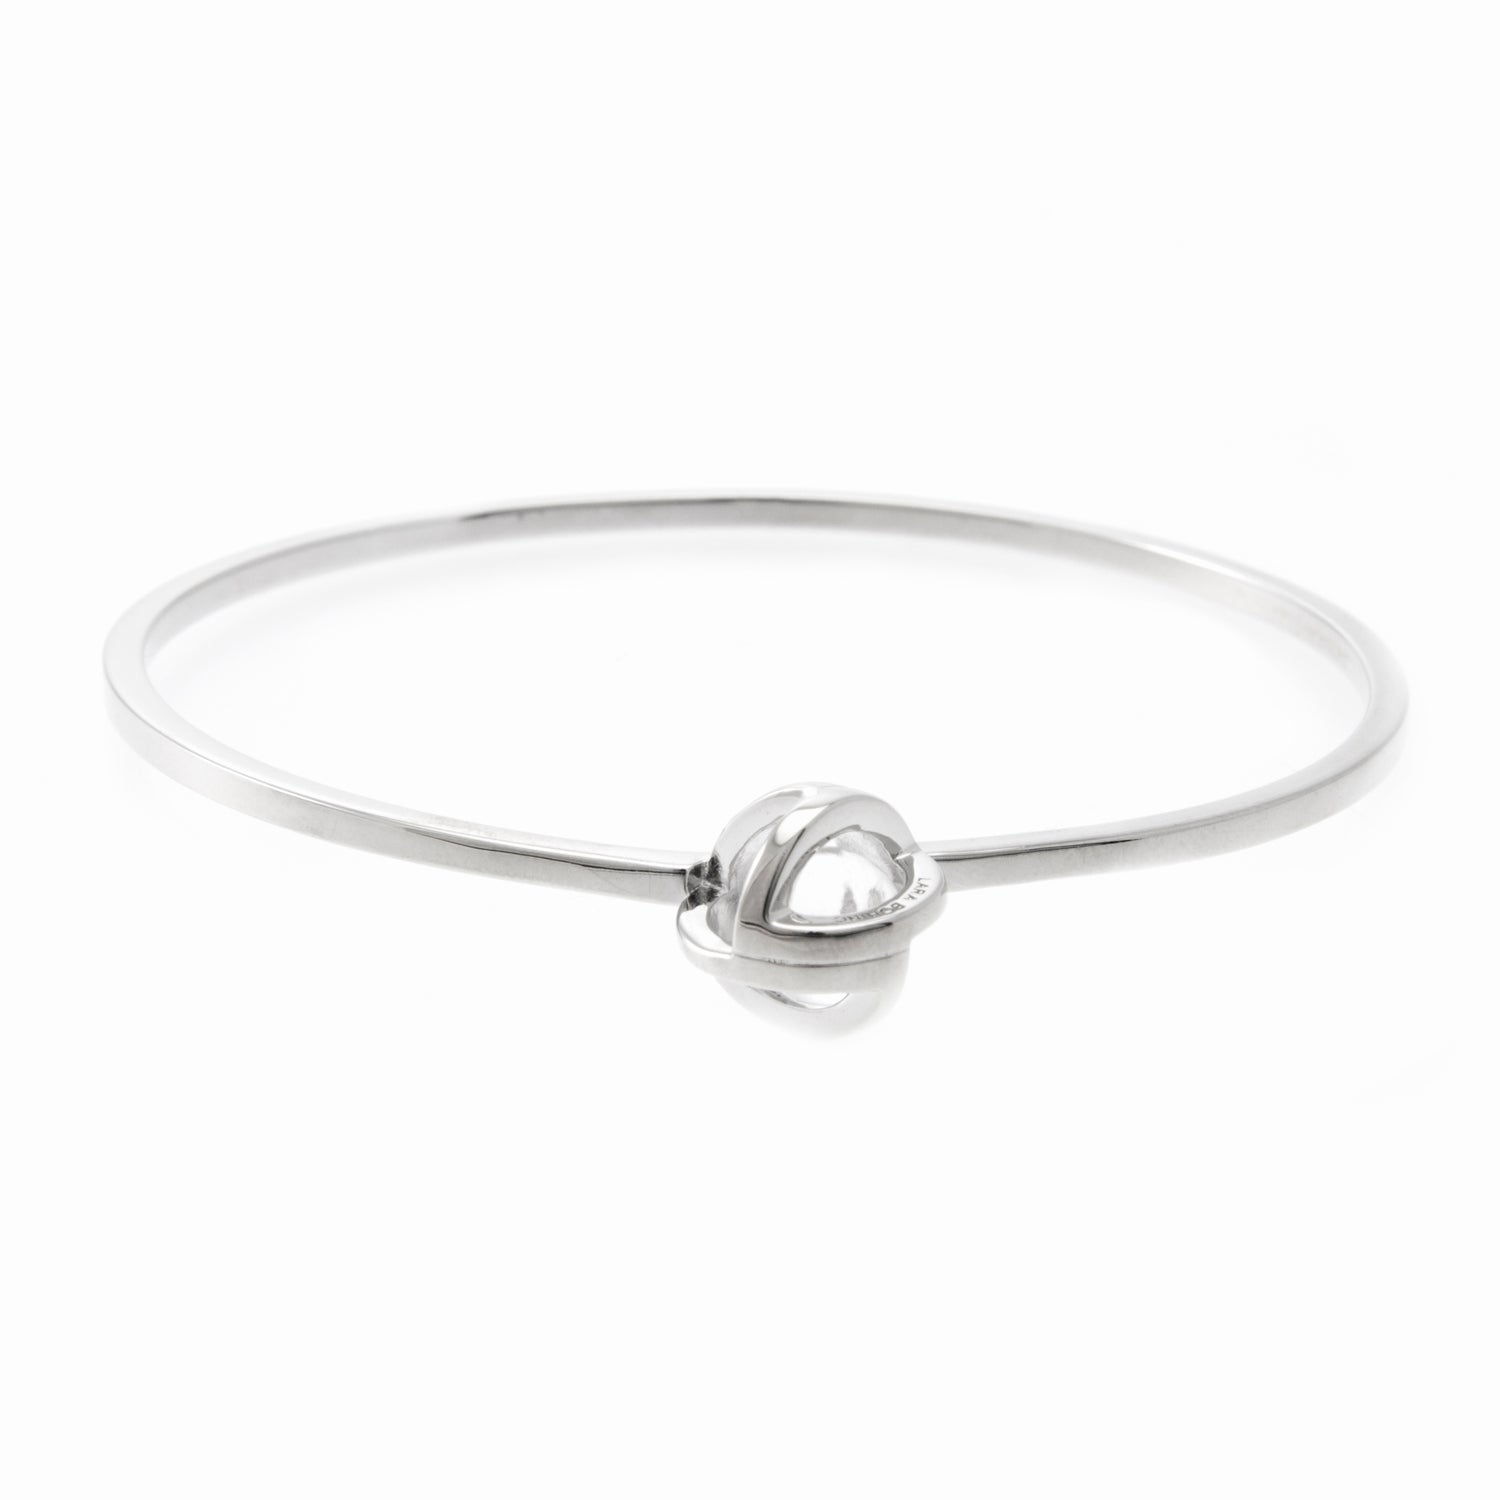 Planetaria 12 Bangle</br>Sterling Silver